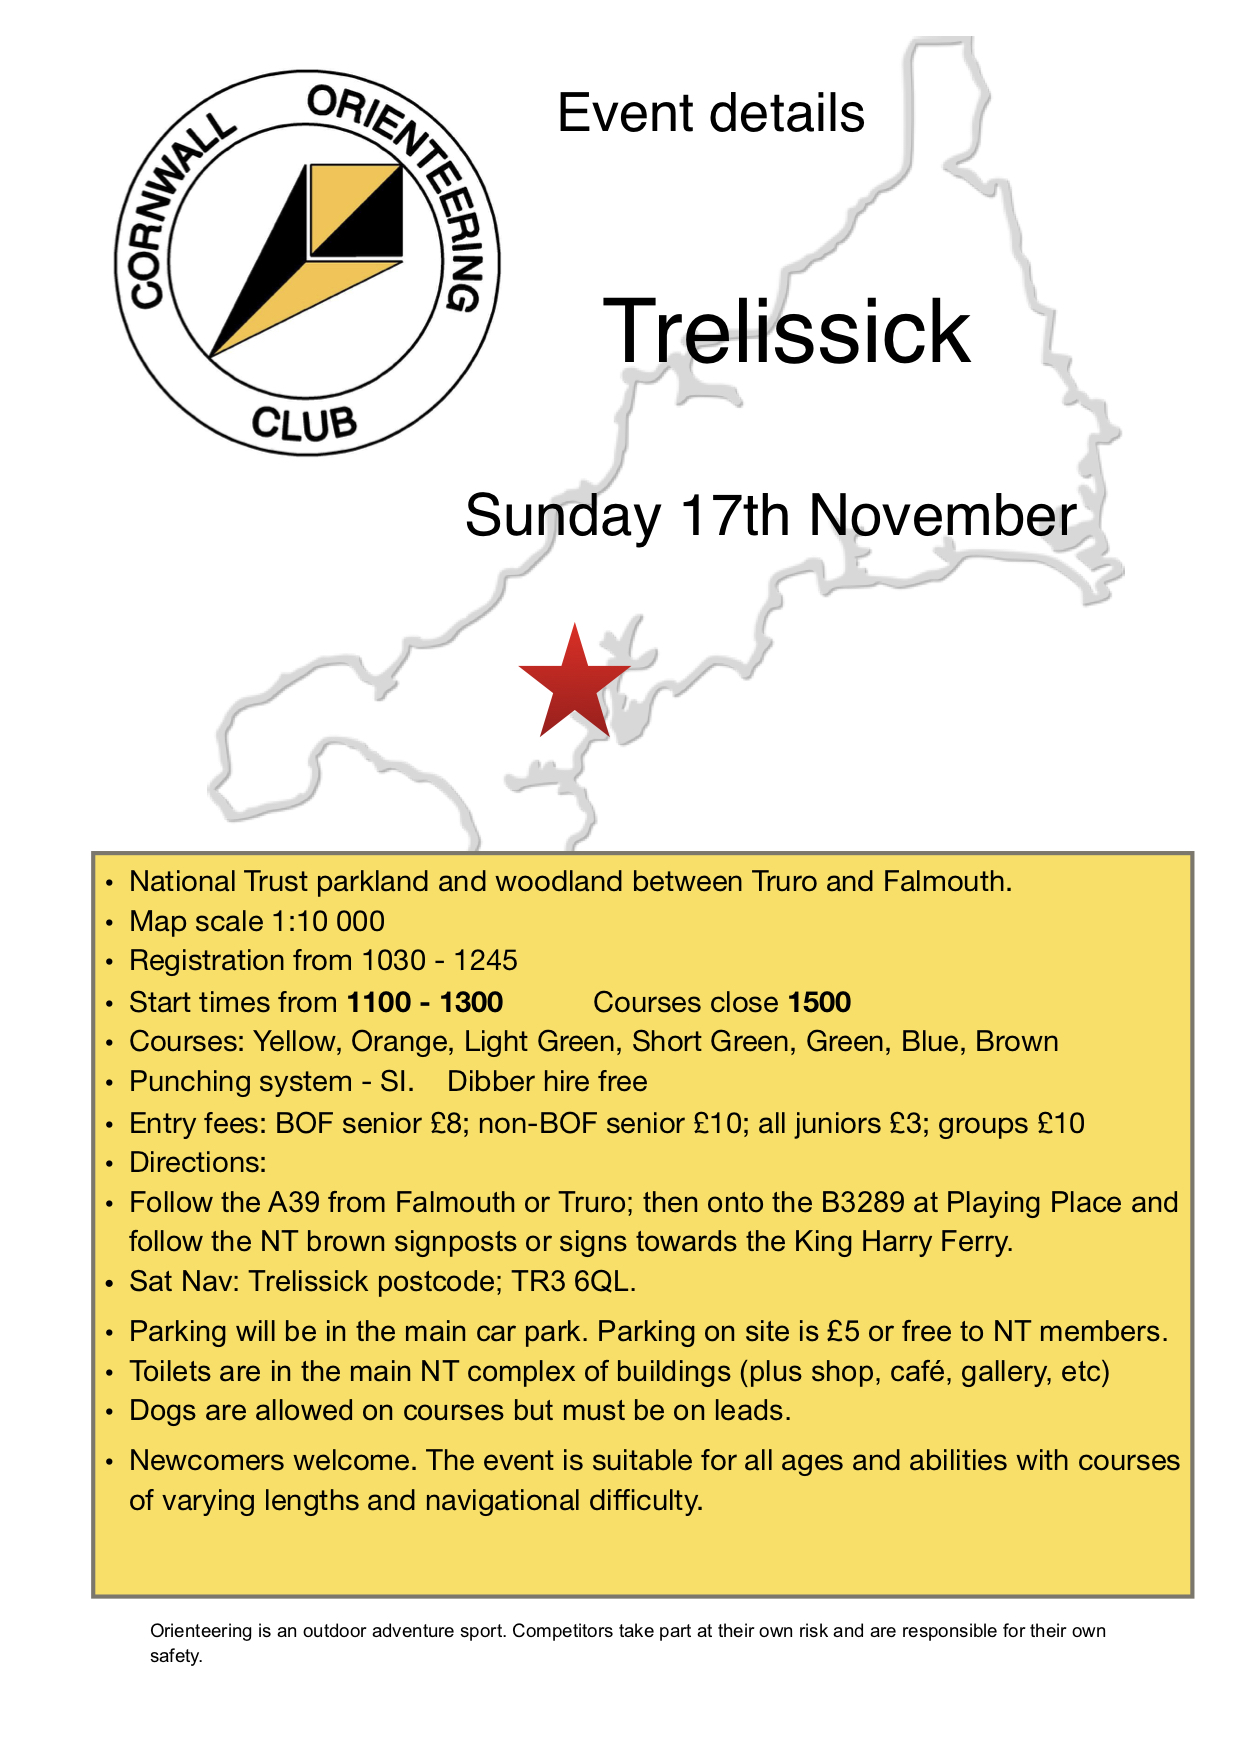 Flyer for Trelissick event